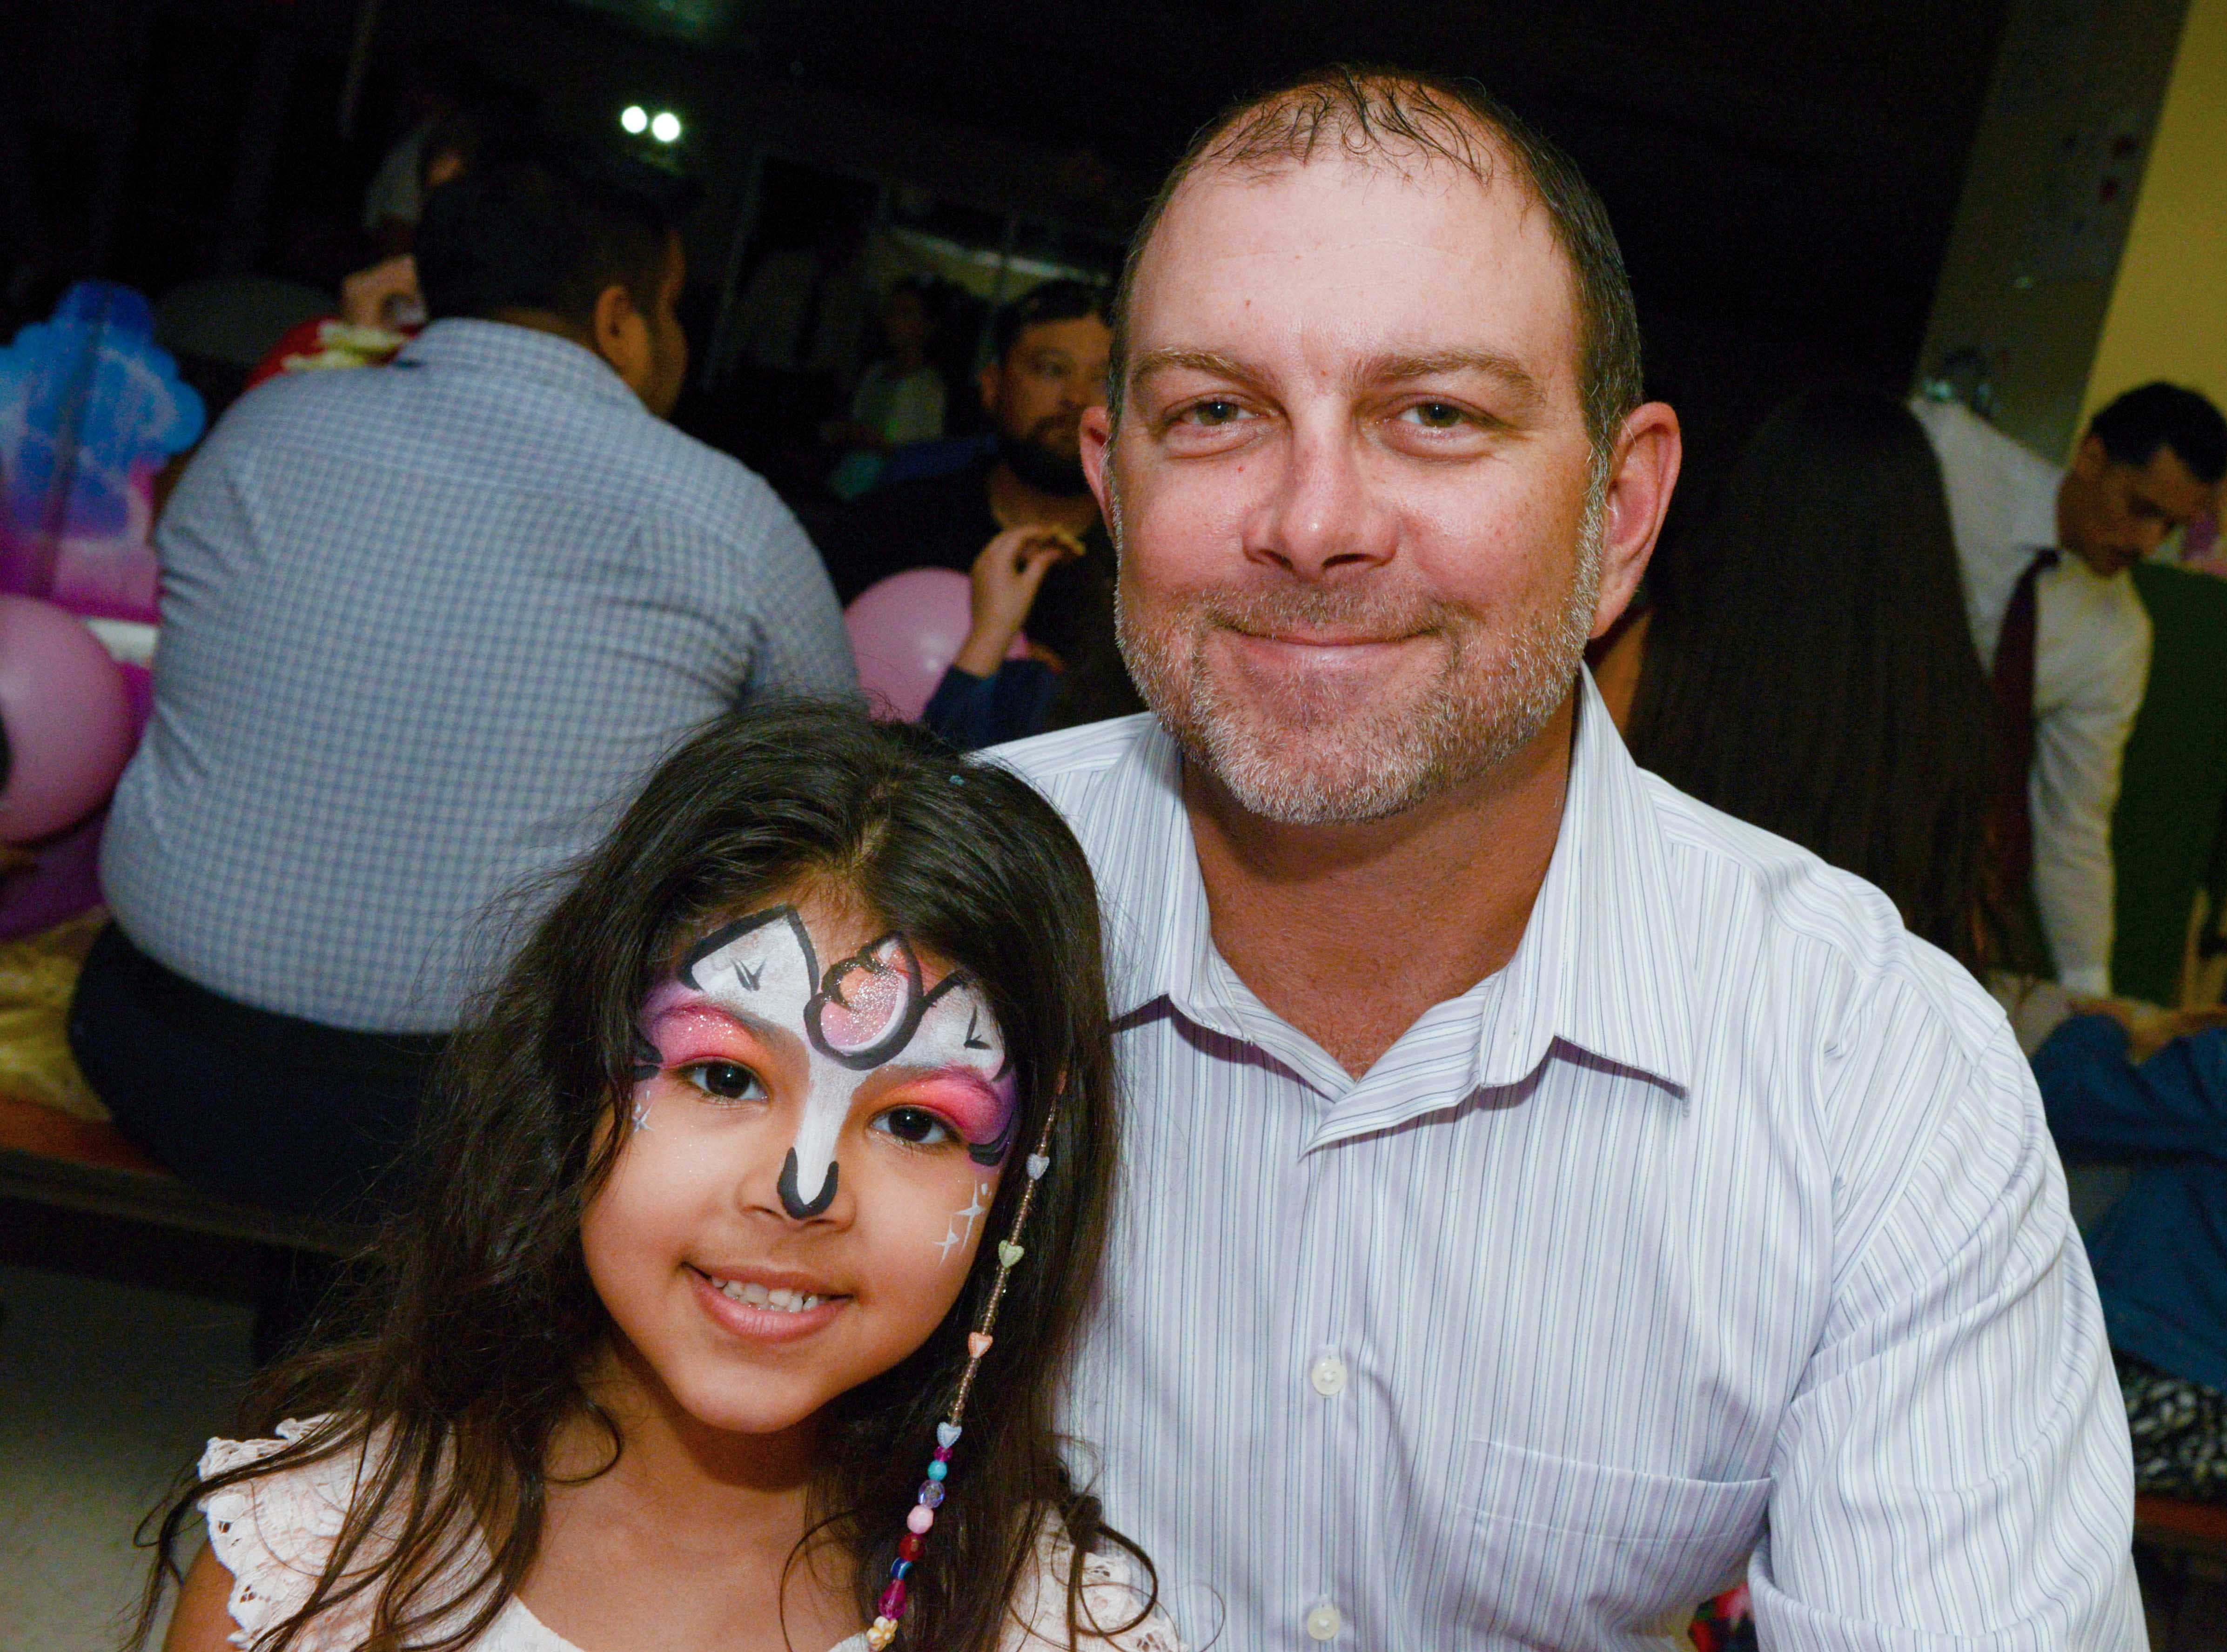 Christina and Bobby Malone at the Father/Daughter/Someone Special dance at Renaissance Charter School of St. Lucie.